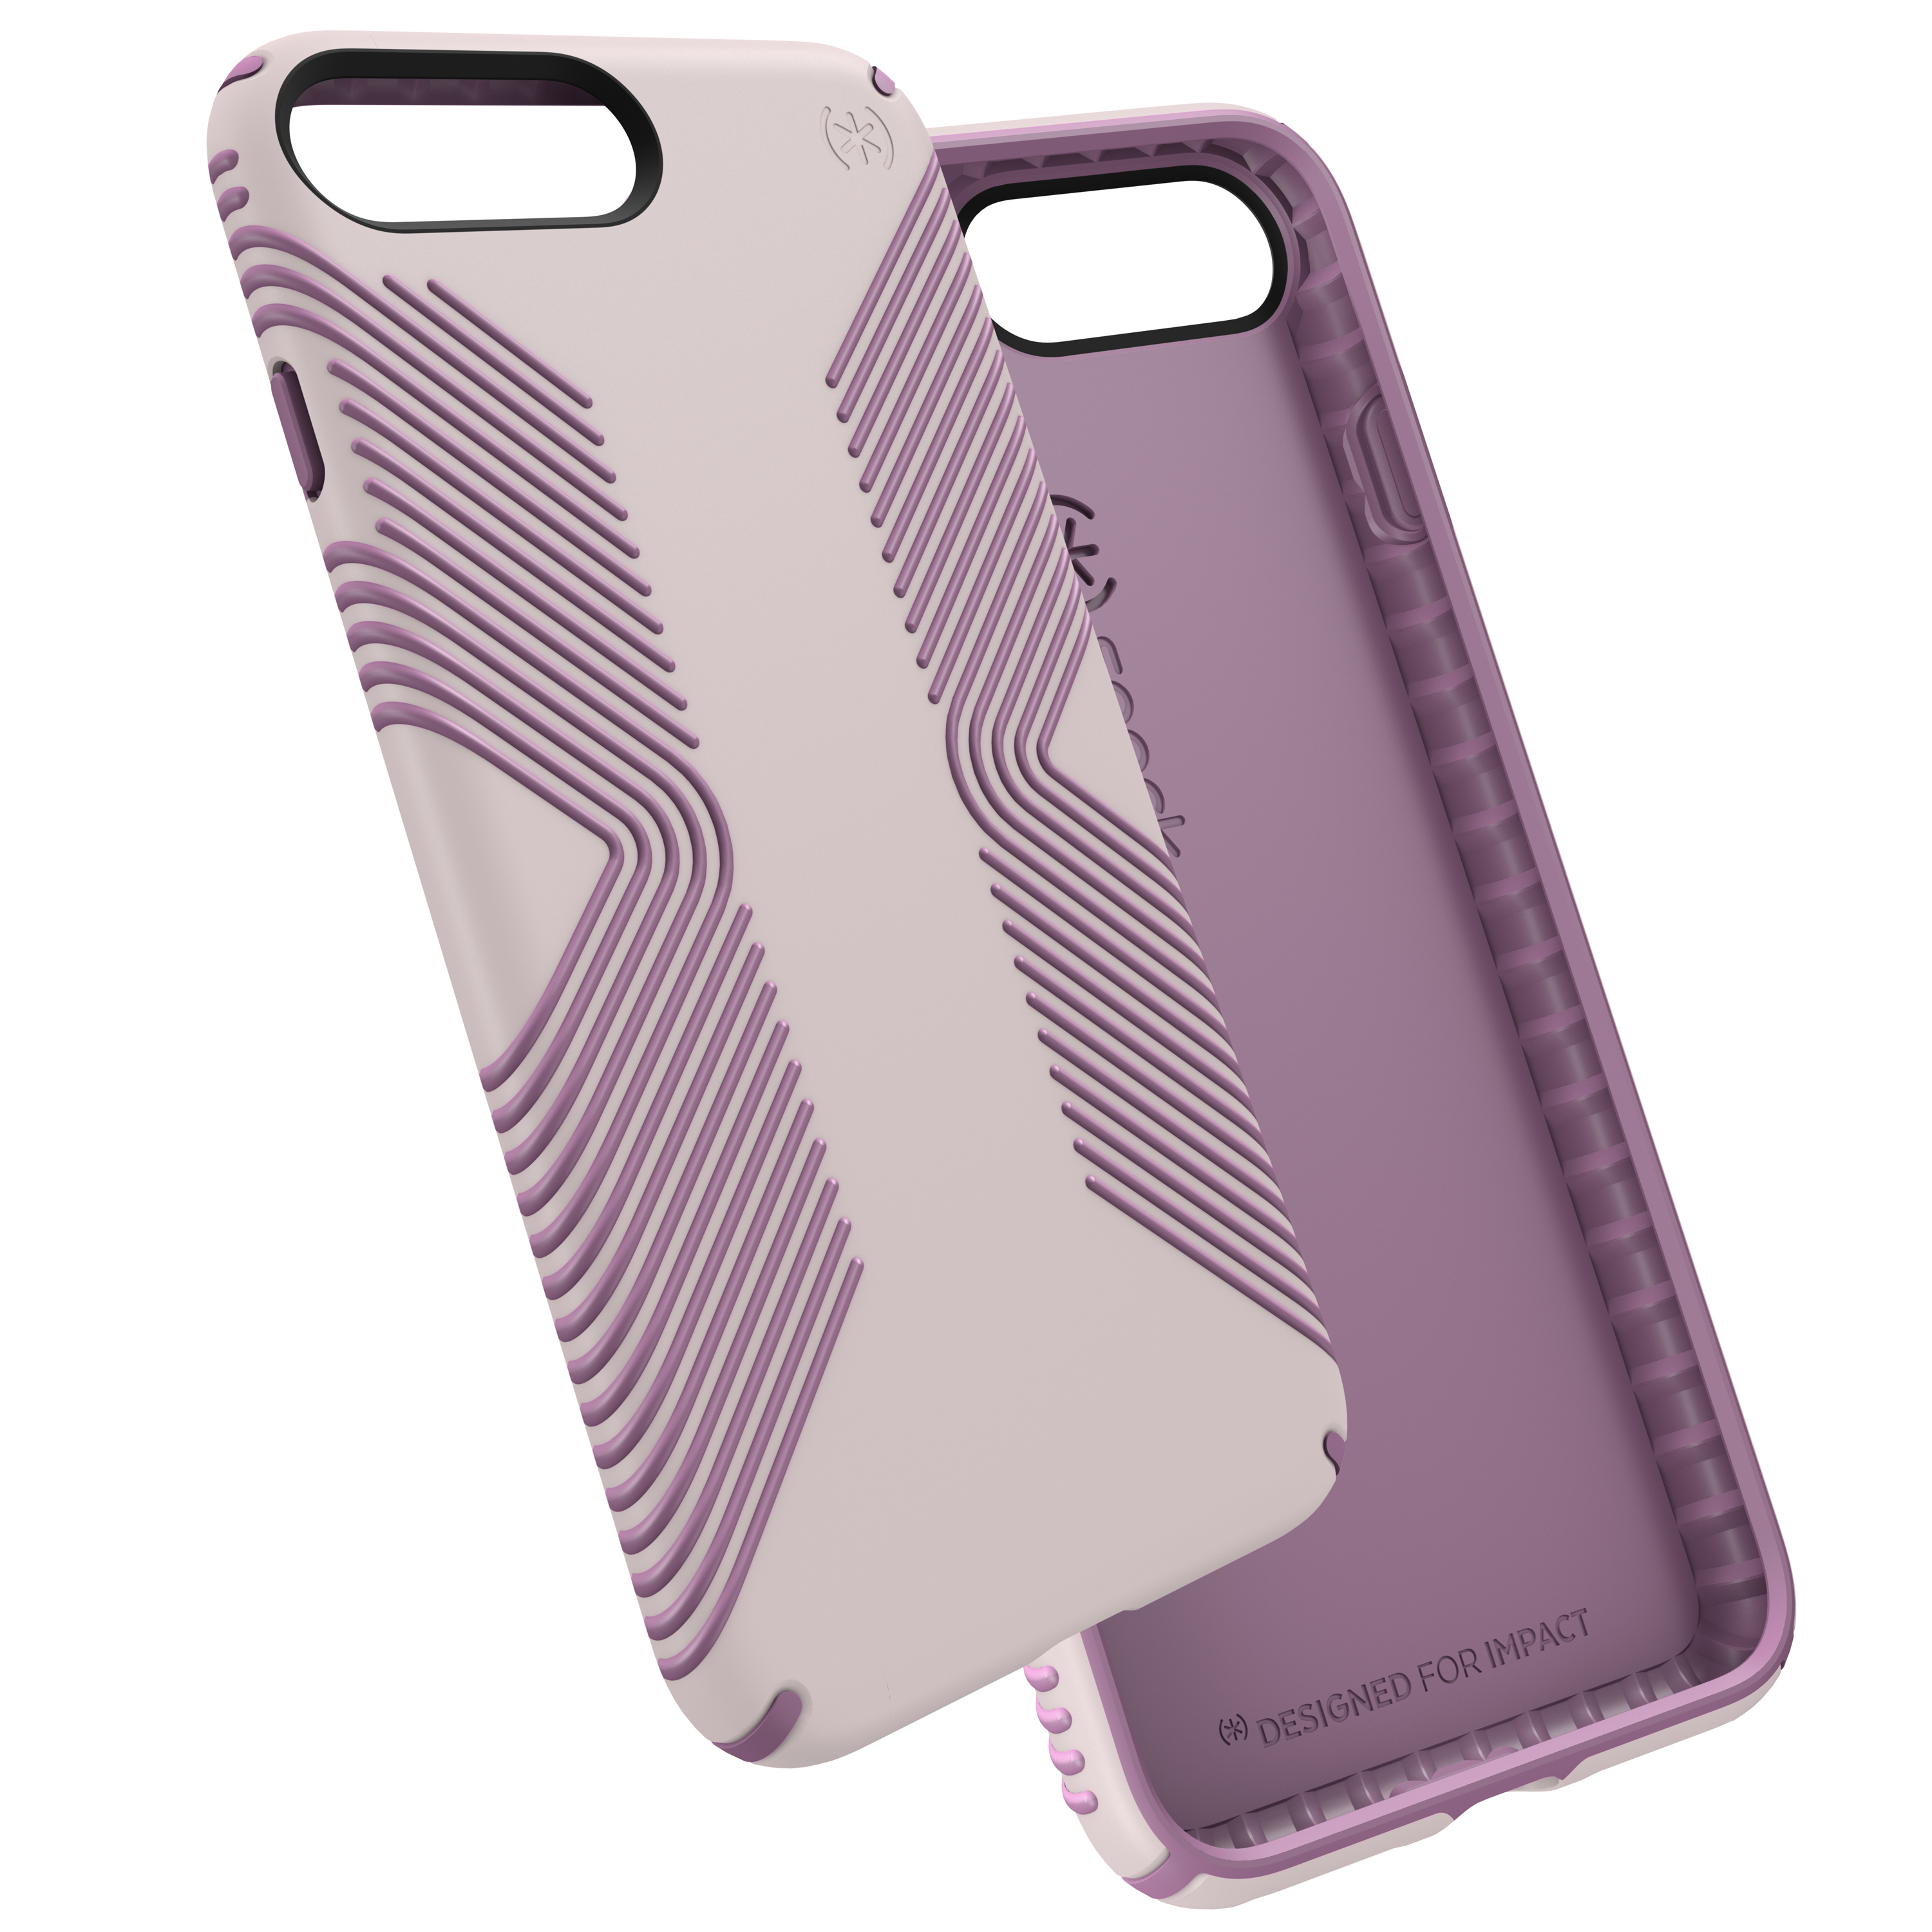 COMPATIBLE WITH IPHONE 8 Plus 7 ONLY